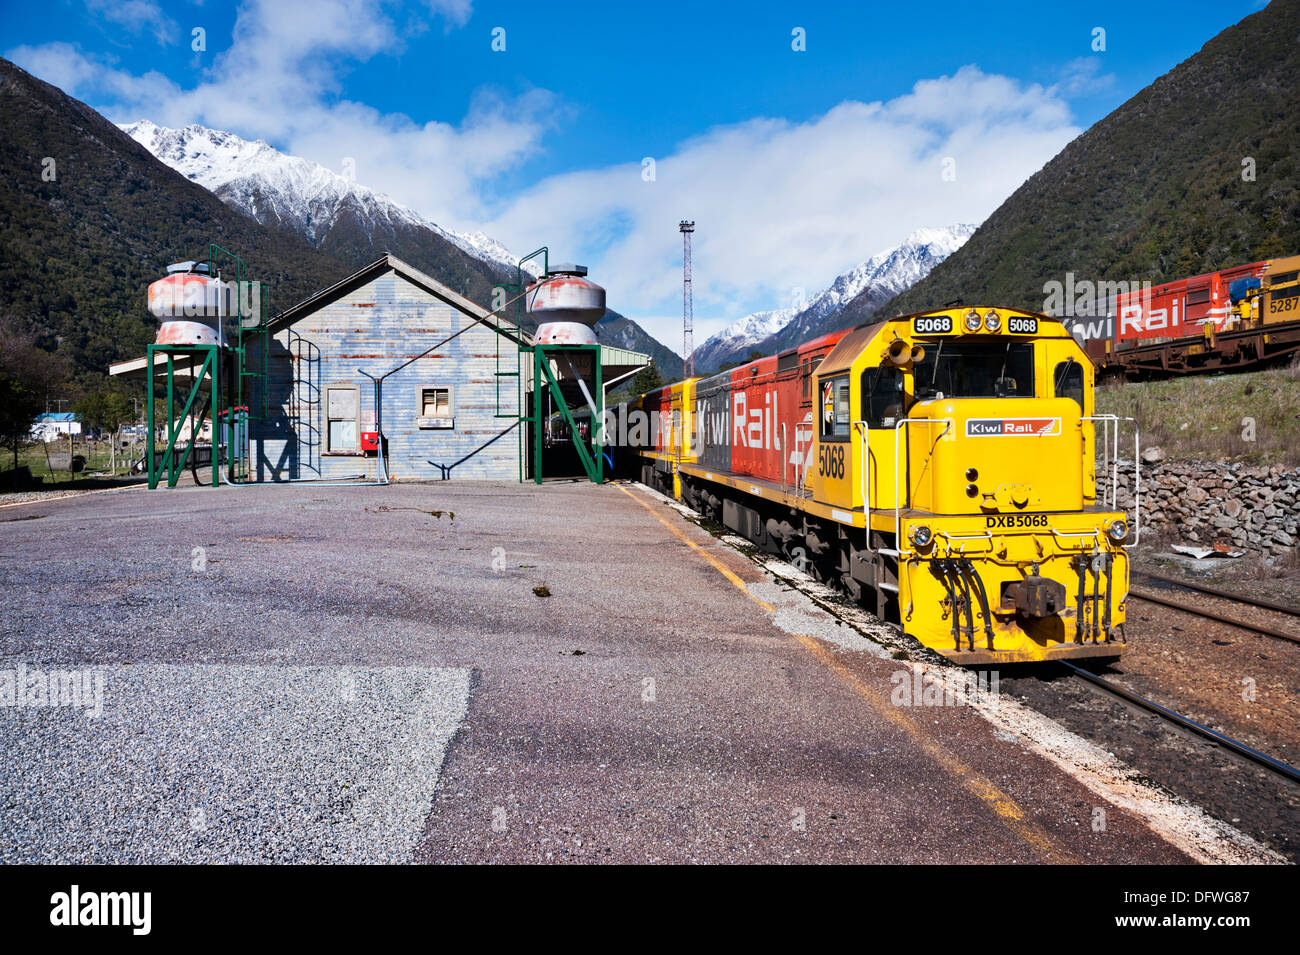 The Southern Alps, South Island, New Zealand. The Tranz Alpine train at Arthur's Pass Station, on way from Christchurch to Greymouth. - Stock Image